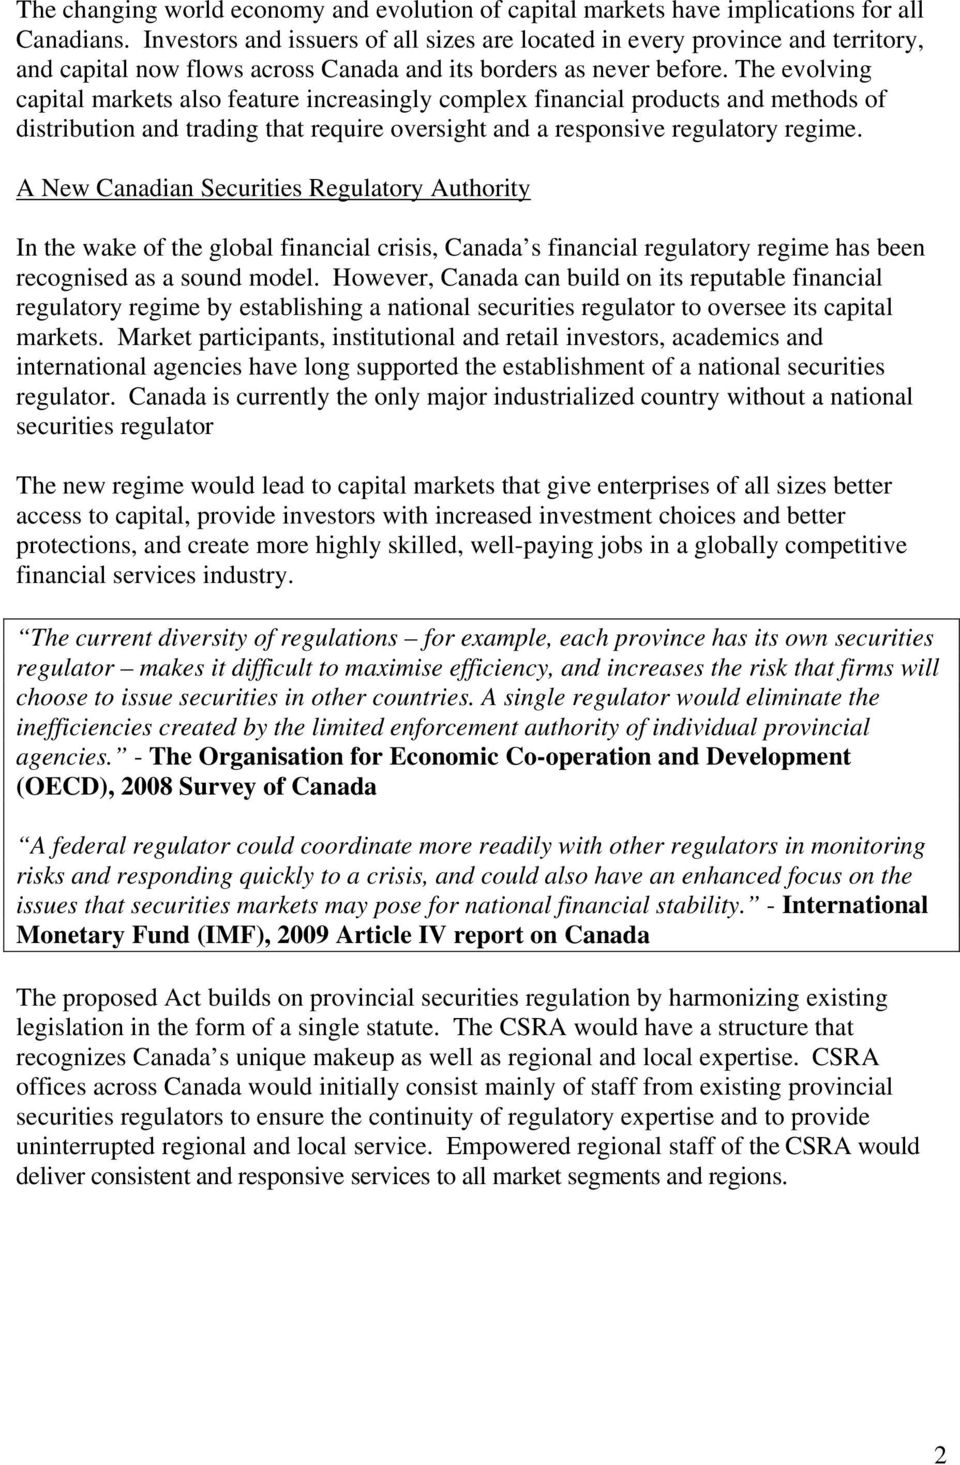 The evolving capital markets also feature increasingly complex financial products and methods of distribution and trading that require oversight and a responsive regulatory regime.